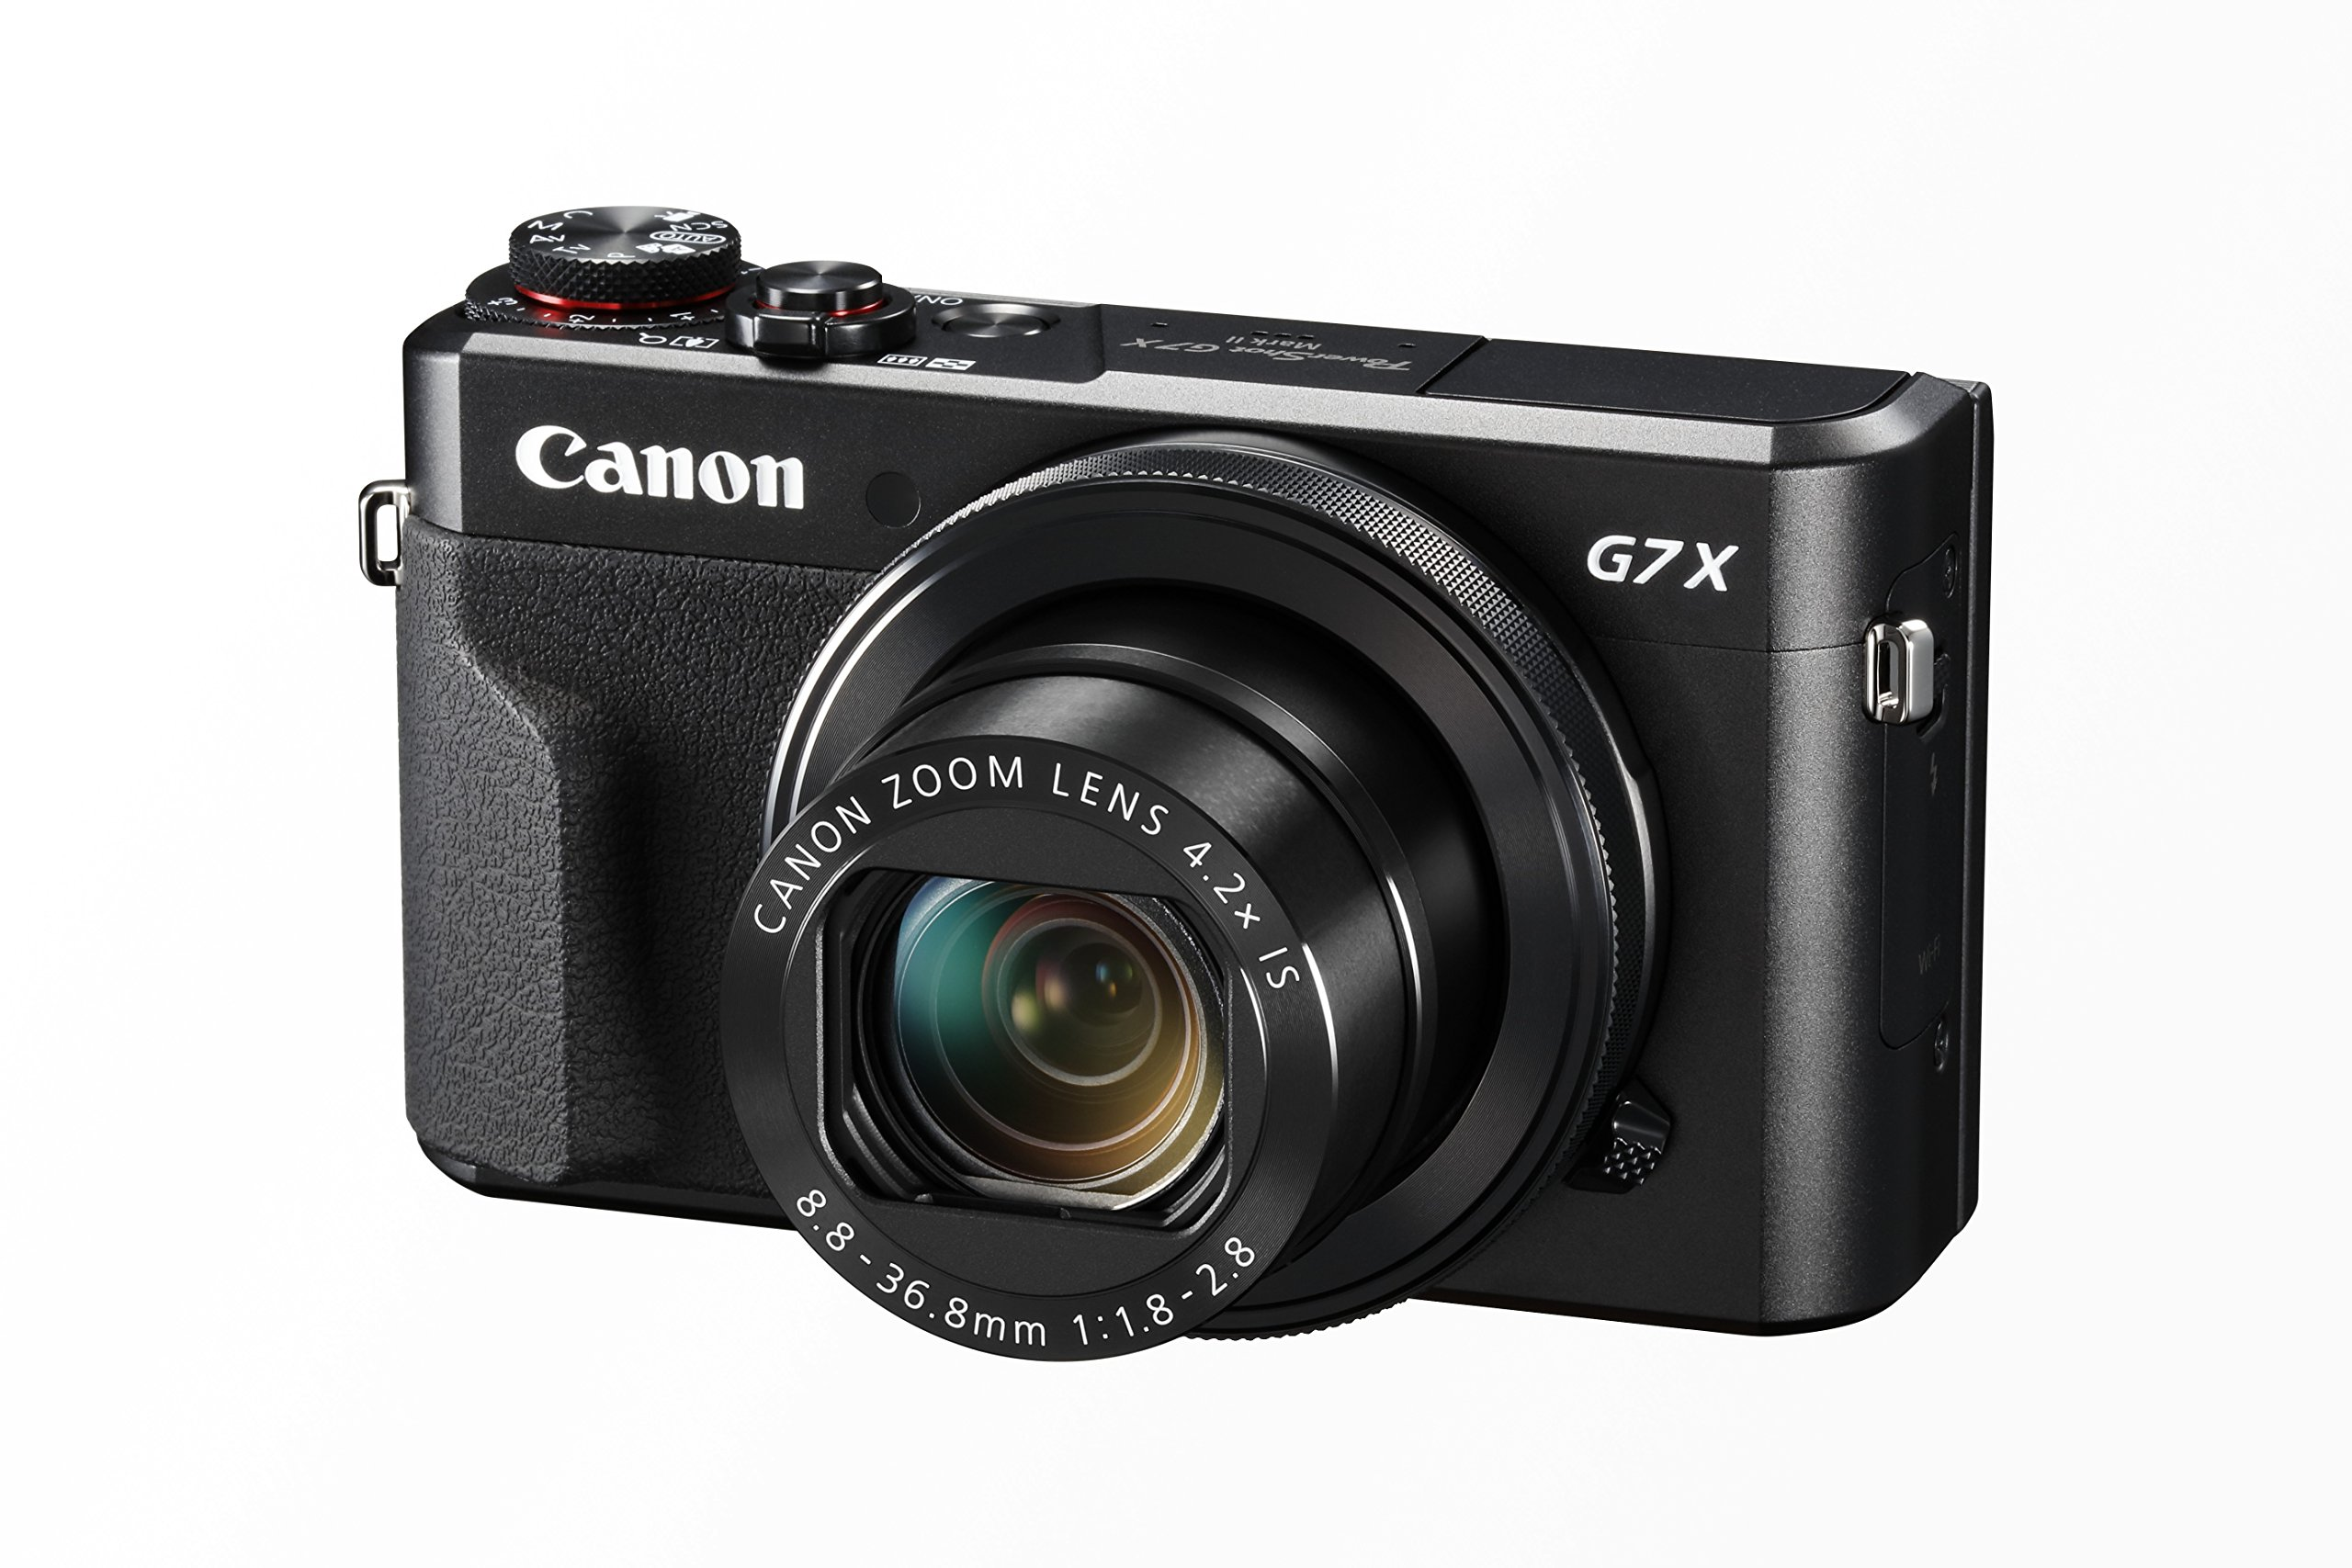 Canon Powershot G7 X Mark Ii Digital Camera Camera Vlogging Camera With Full Hd 60p Movies And Tilt Touch Screen Ideal For Vloggers And Youtube Content Creators Megagear Mg766 Canon Powershot